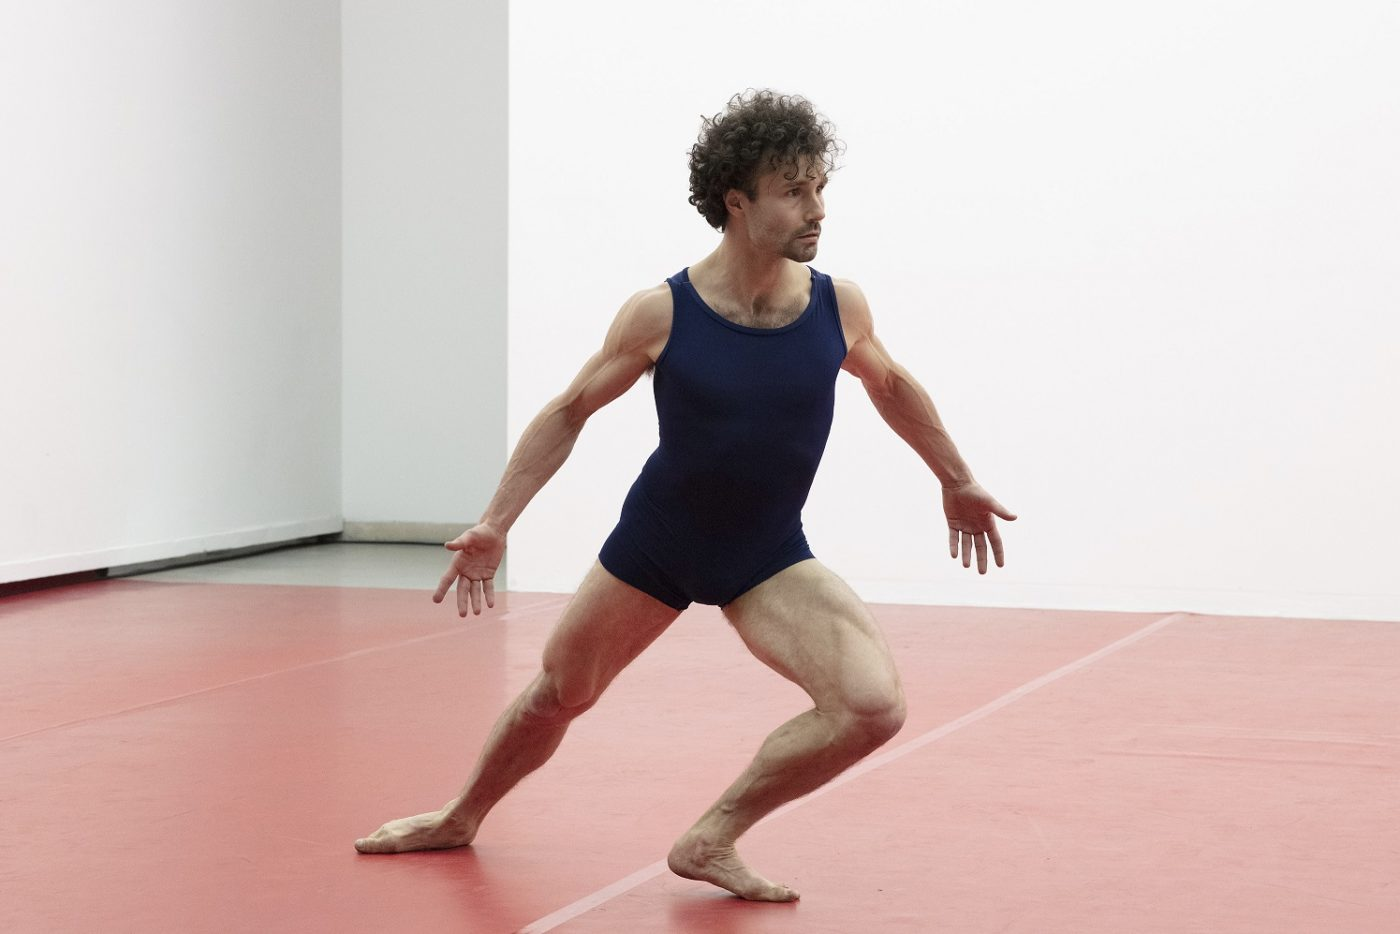 Thomasin Gülgeç - Thomasin Gülgeç is a dancer with the Royal Ballet and Rambert Dance. He has worked with choreographers including Christopher Bruce, Fin Walker and Akram Khan (for the 2012 Olympic opening ceremony). Elsewhere he has appeared in performances at the Young Vic and in the 2012 film Anna Karenina, directed by Joe Wright.